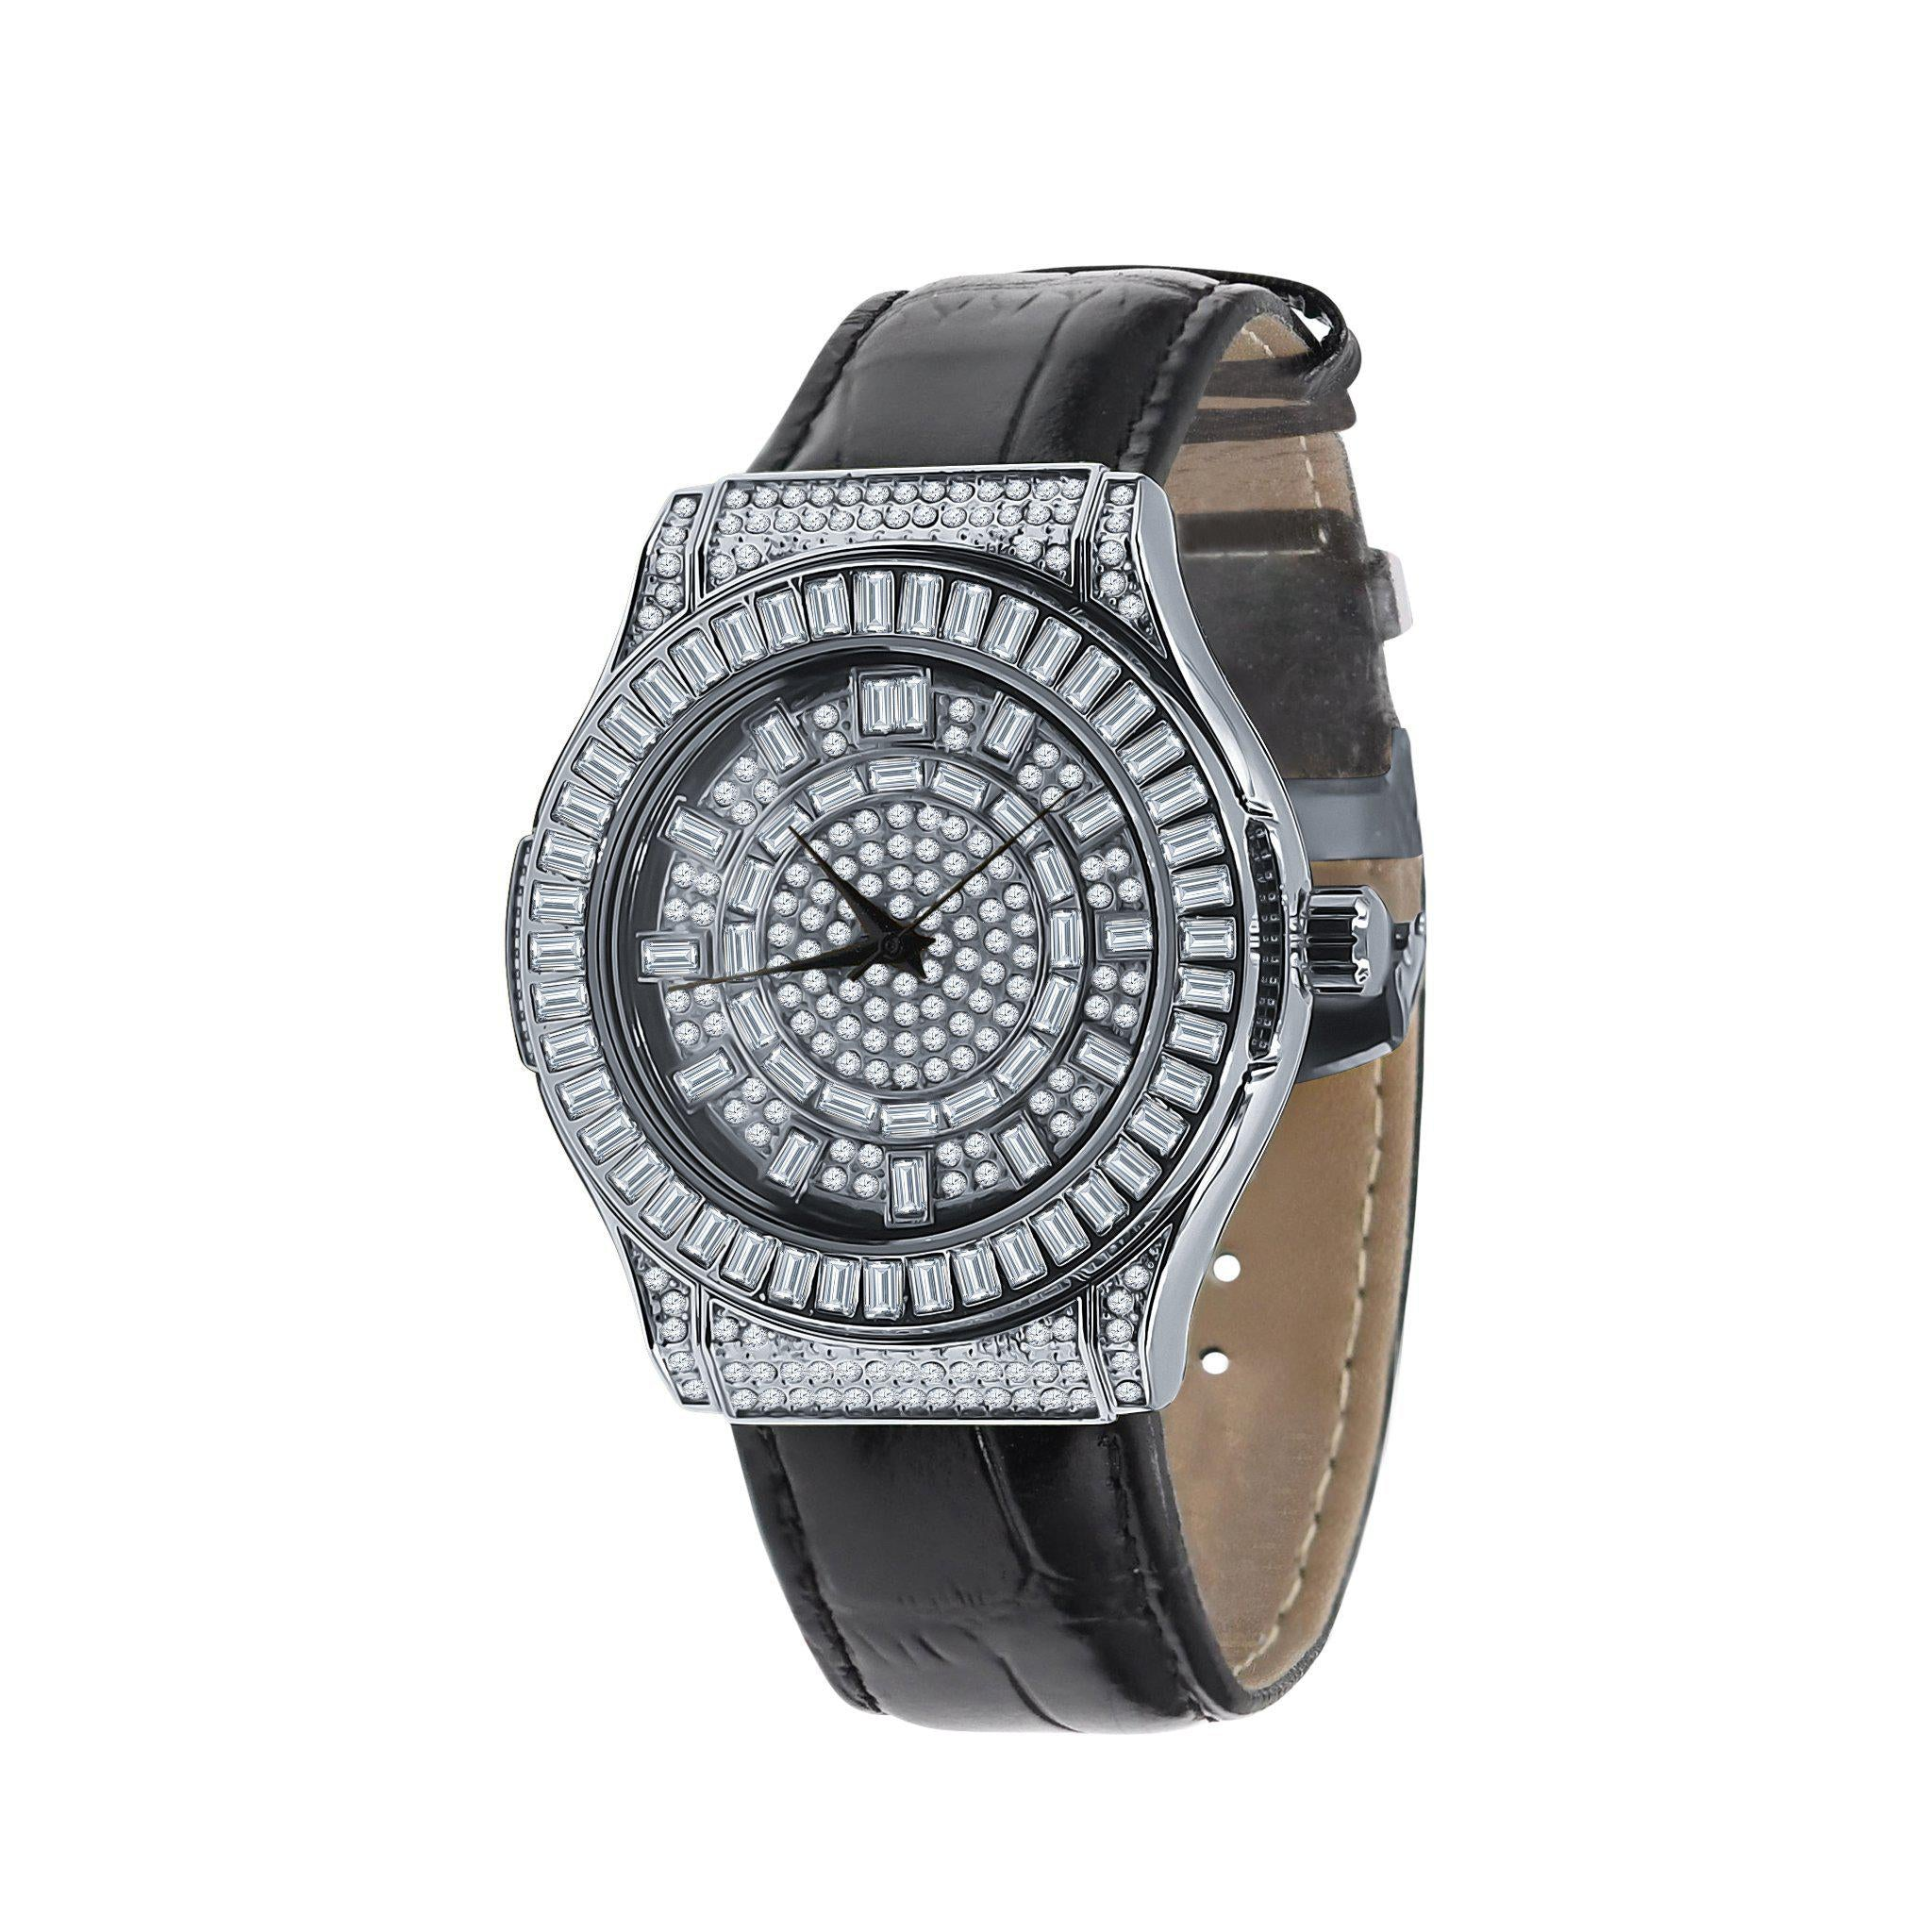 The Conspicuous White Bling Leather Watch-Men Watch-Gold as Ice